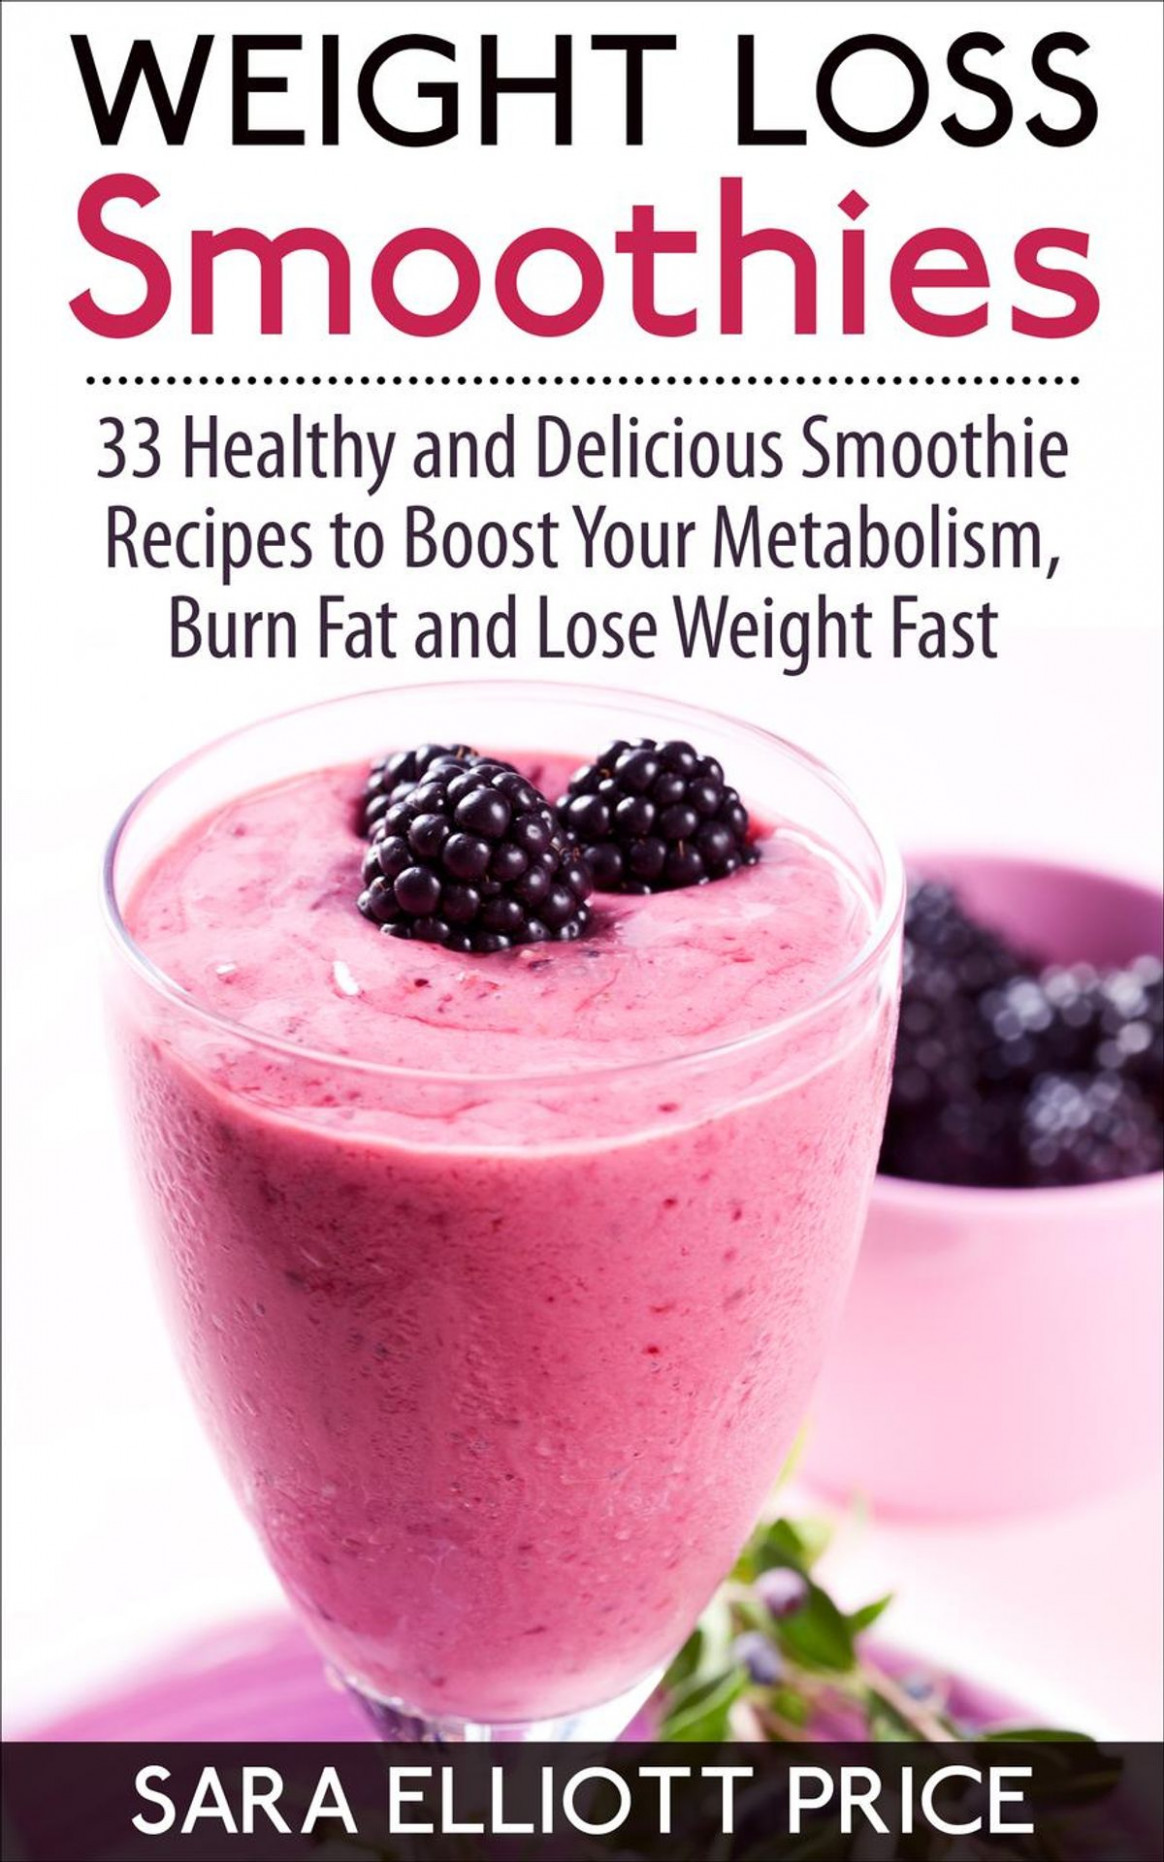 Weight Loss Smoothies: 12 Healthy and Delicious Smoothie Recipes to Boost  Your Metabolism, Burn Fat and Lose Weight Fast ebook by Sara Elliott Price  - ..